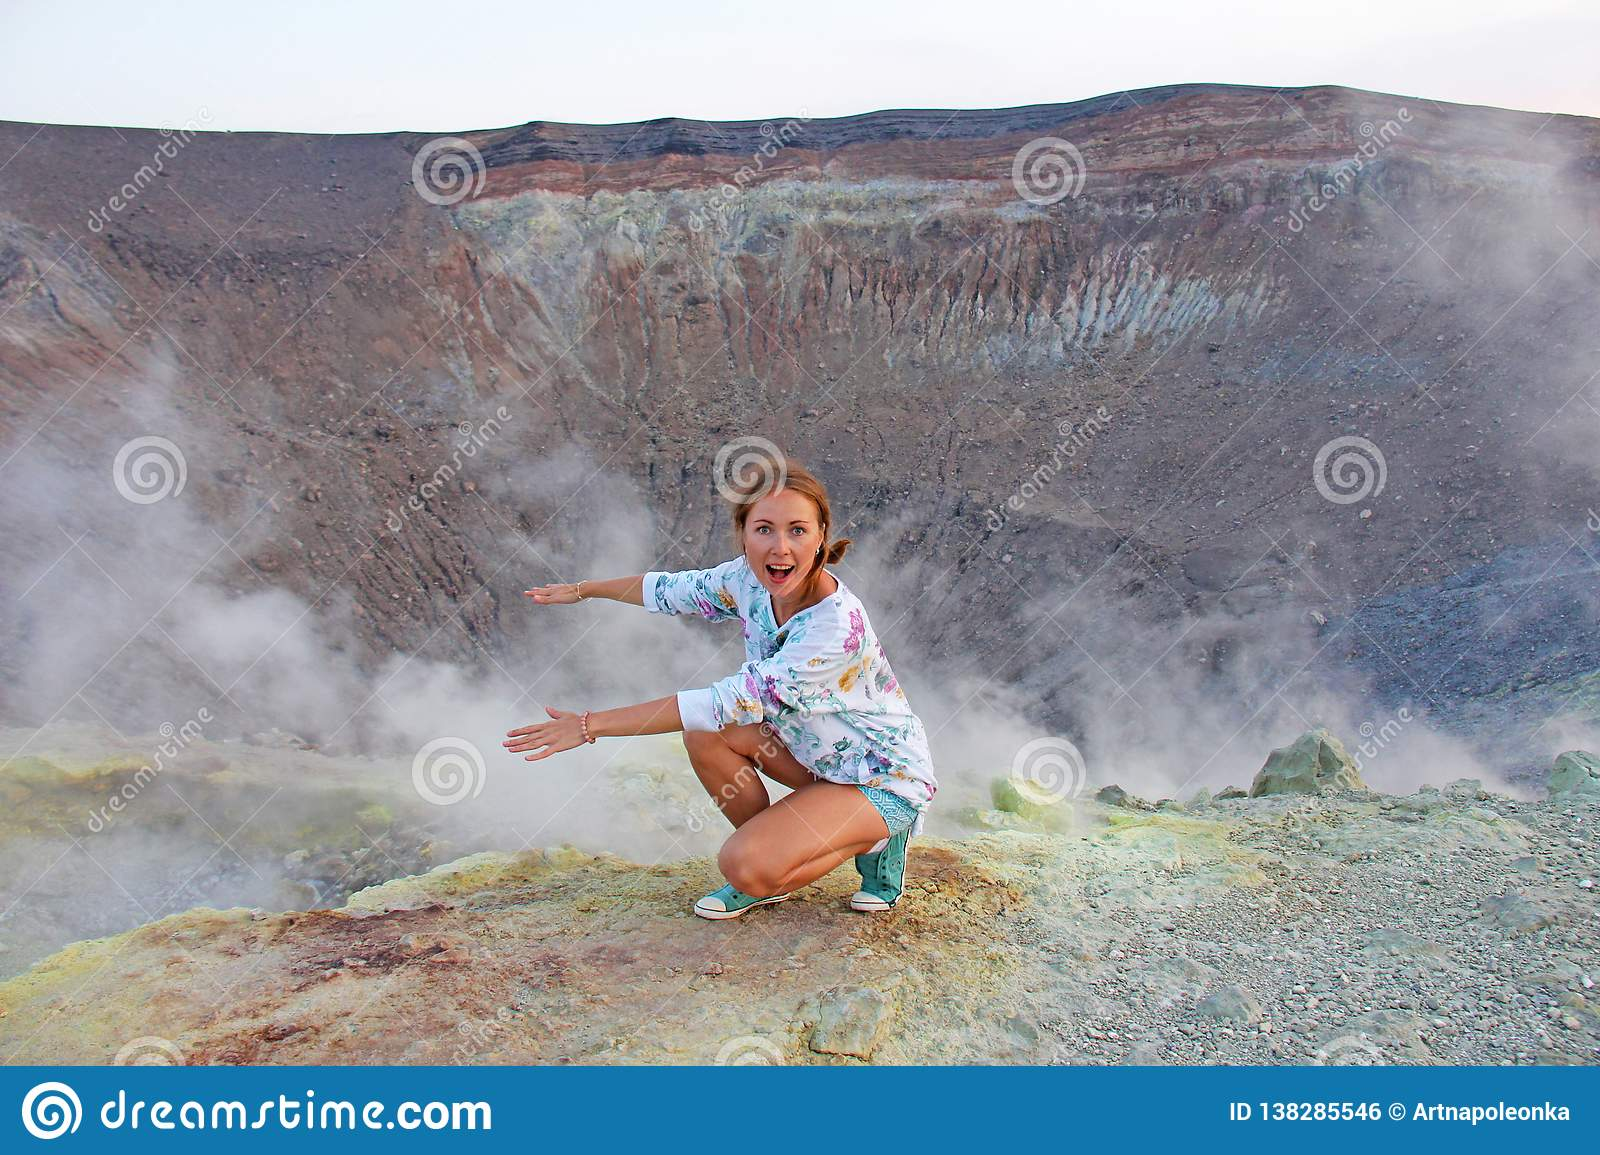 A girl on the Gray Hydrogen Volcano and Volcano Craters on Vulca